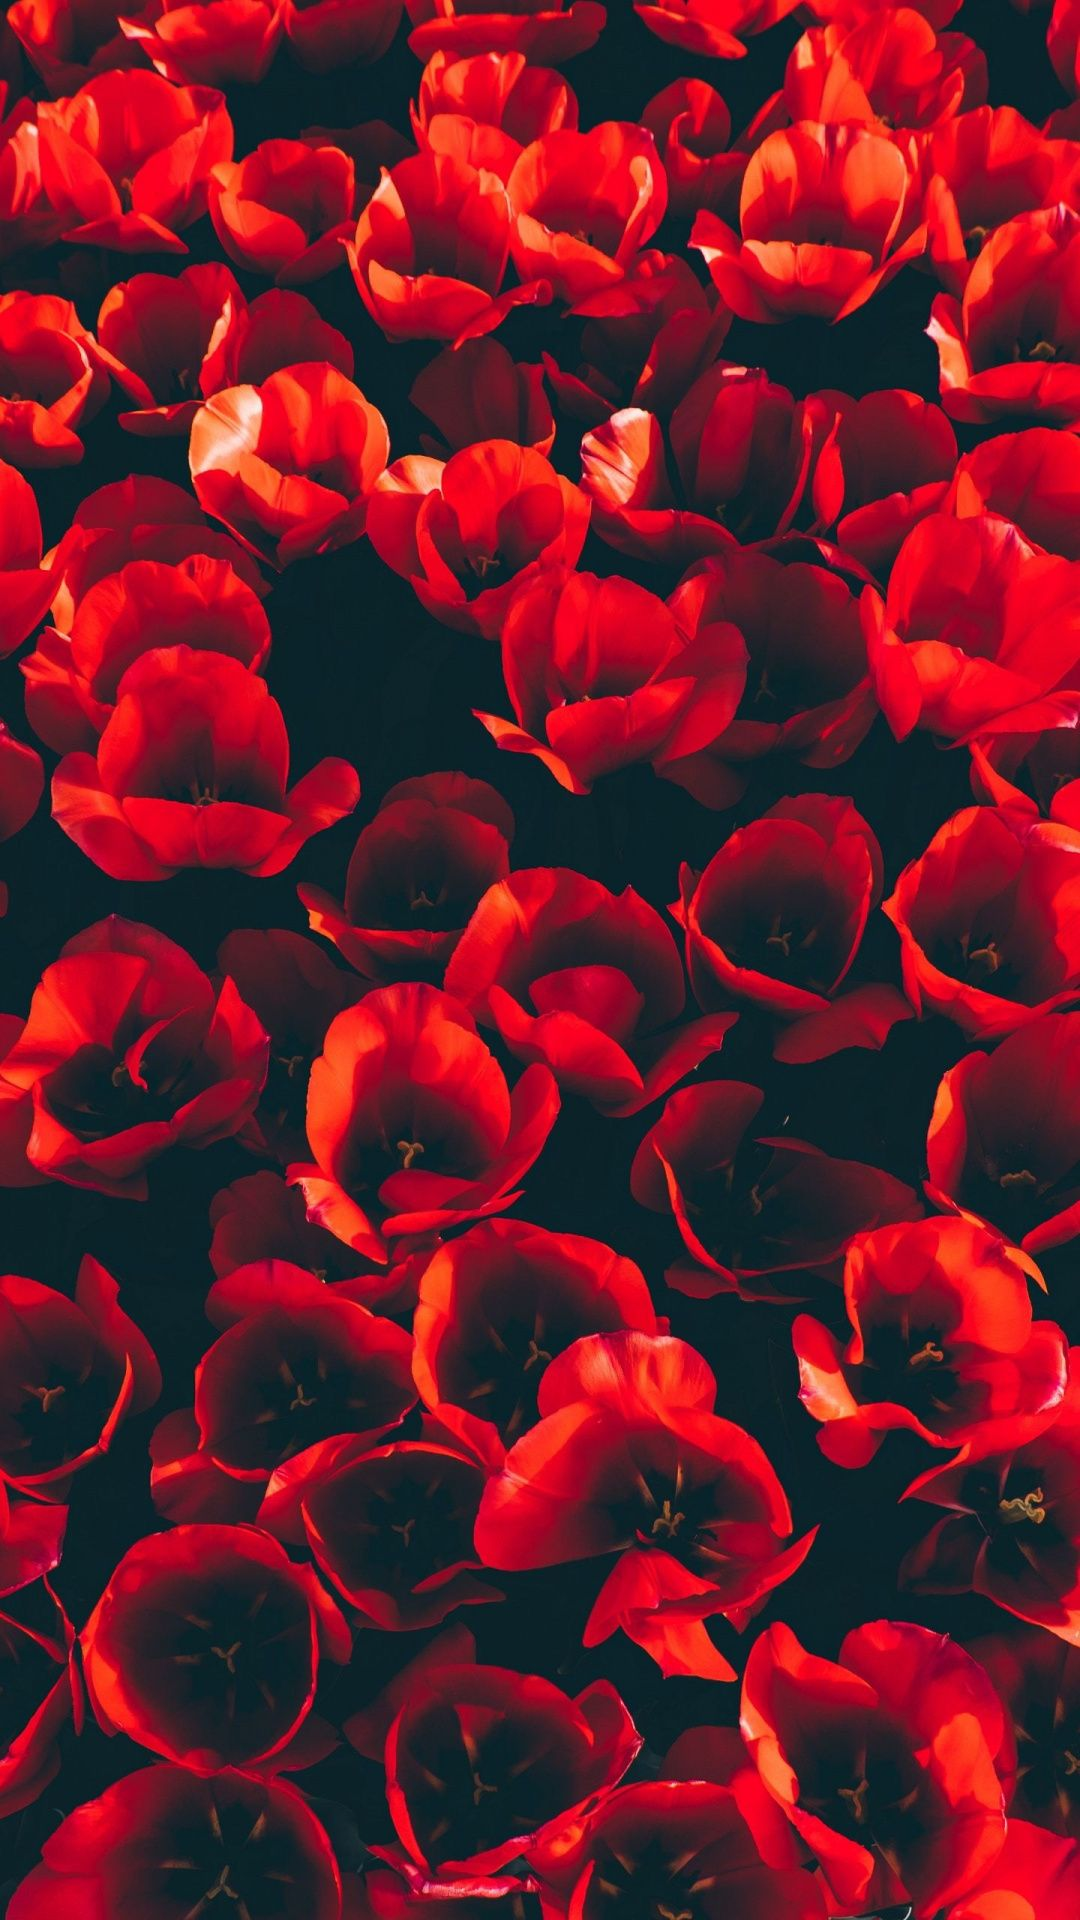 Tulips Flowers Red Decorative 1080x1920 Wallpaper Red Flower Wallpaper Flower Wallpaper Flower Background Wallpaper